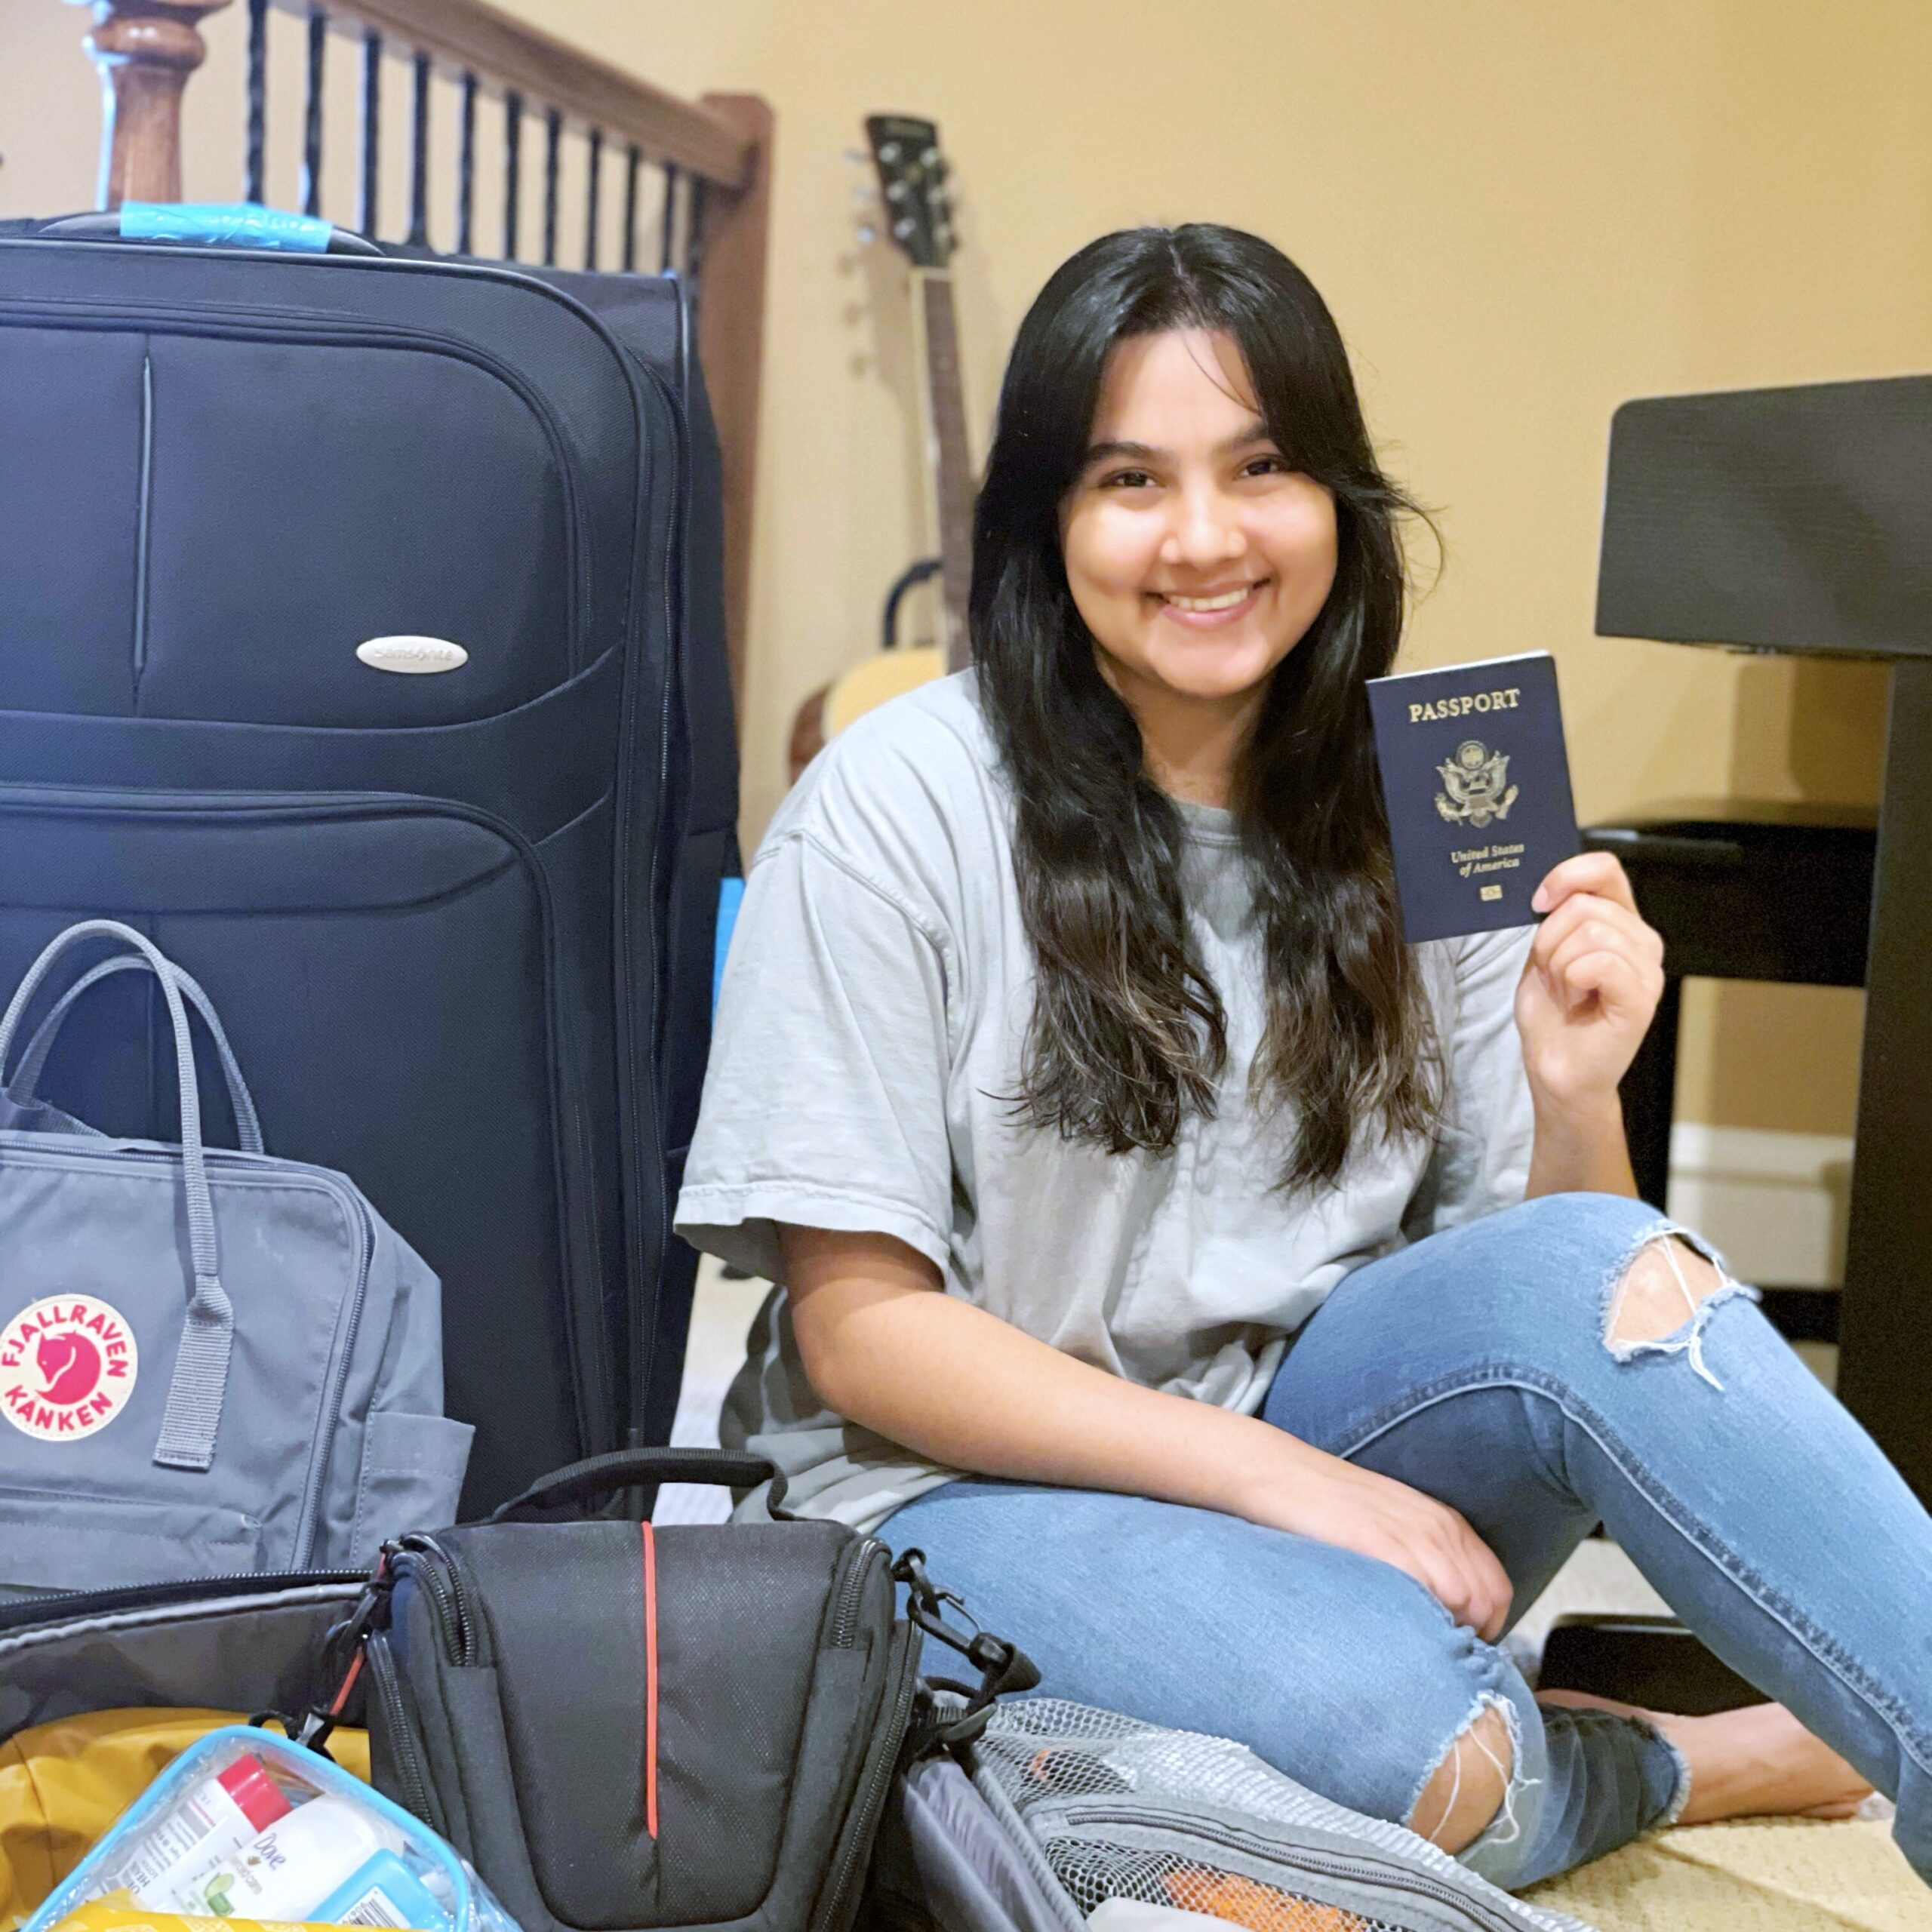 girl smiles holding up passport and sitting near many bags